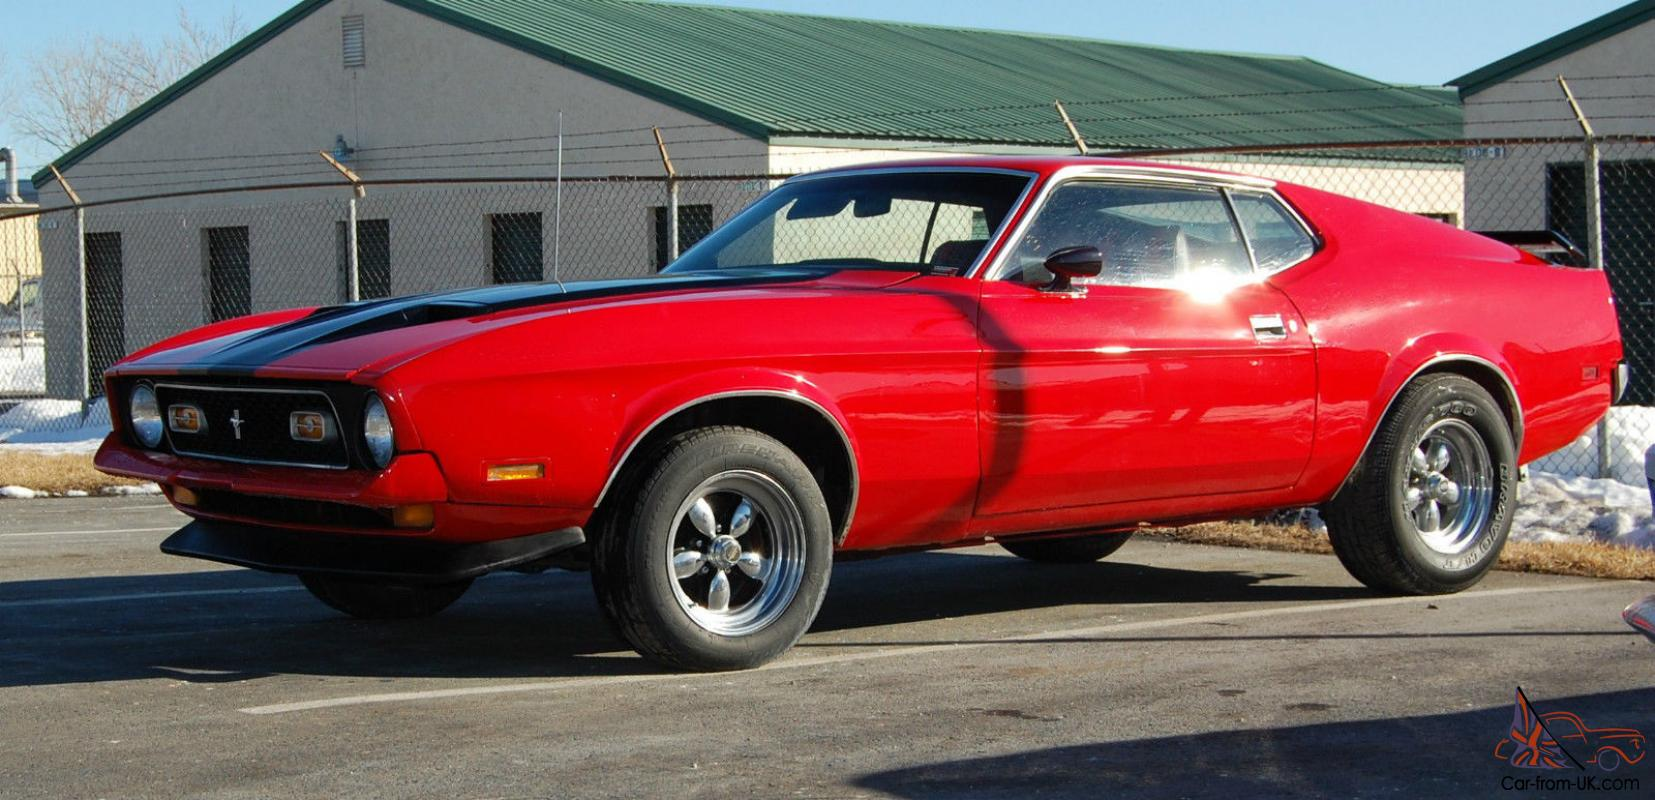 1971 Mach 1 Ford Mustang with Matching Number 351 Cleveland